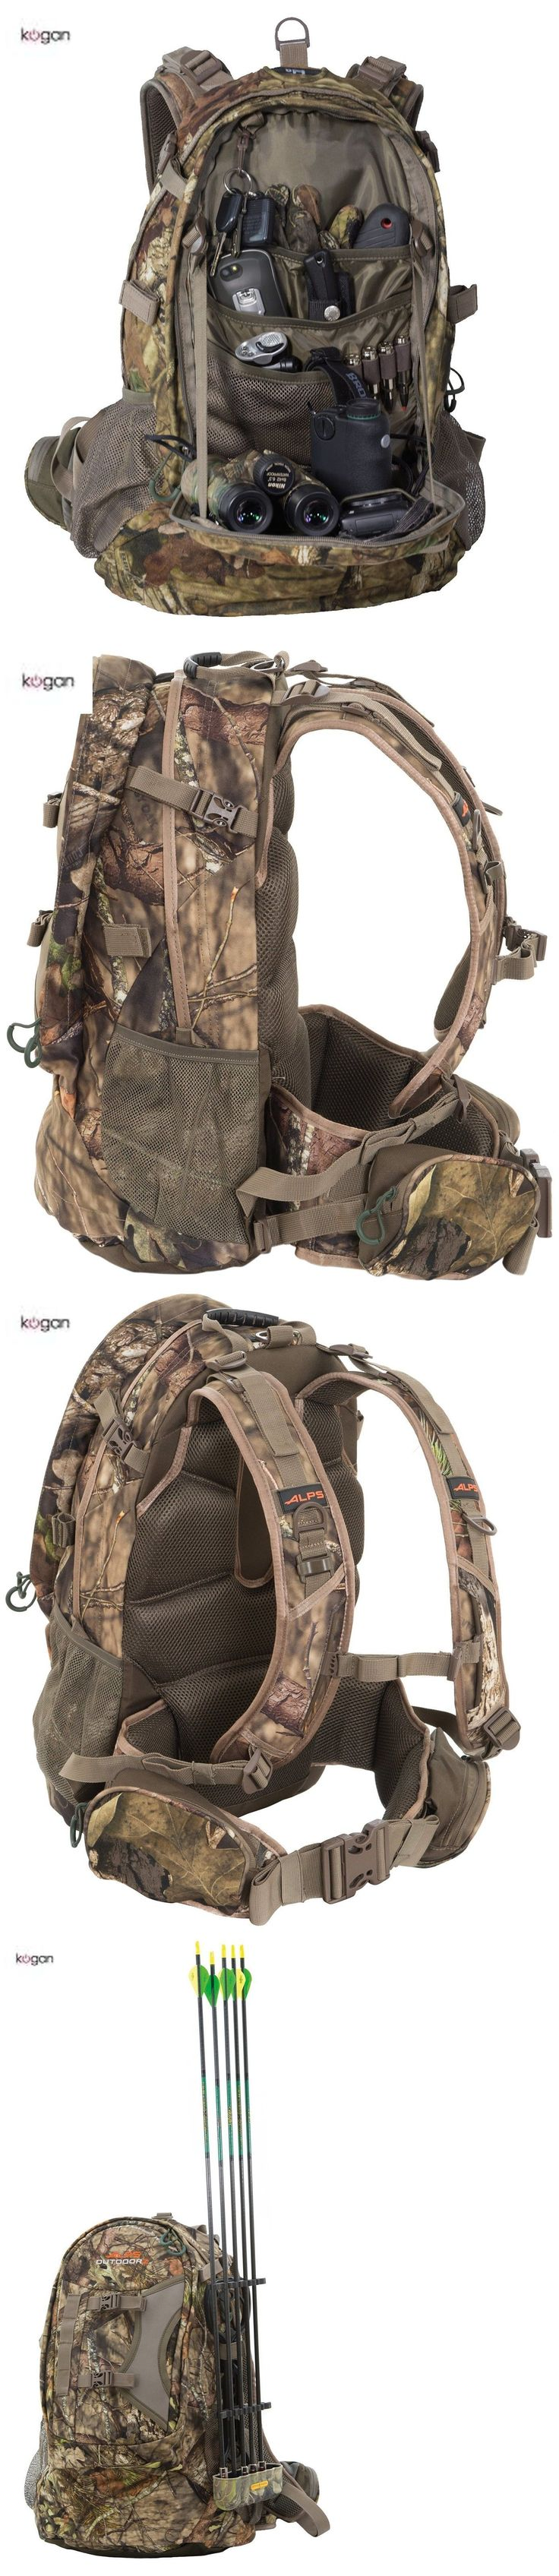 Hunting Bags and Packs 52503: Alps Hunting Camping Bow Archery Rifle Back Pack Camo Tactical Hiking Gear Bag -> BUY IT NOW ONLY: $88.72 on eBay! #huntingbows